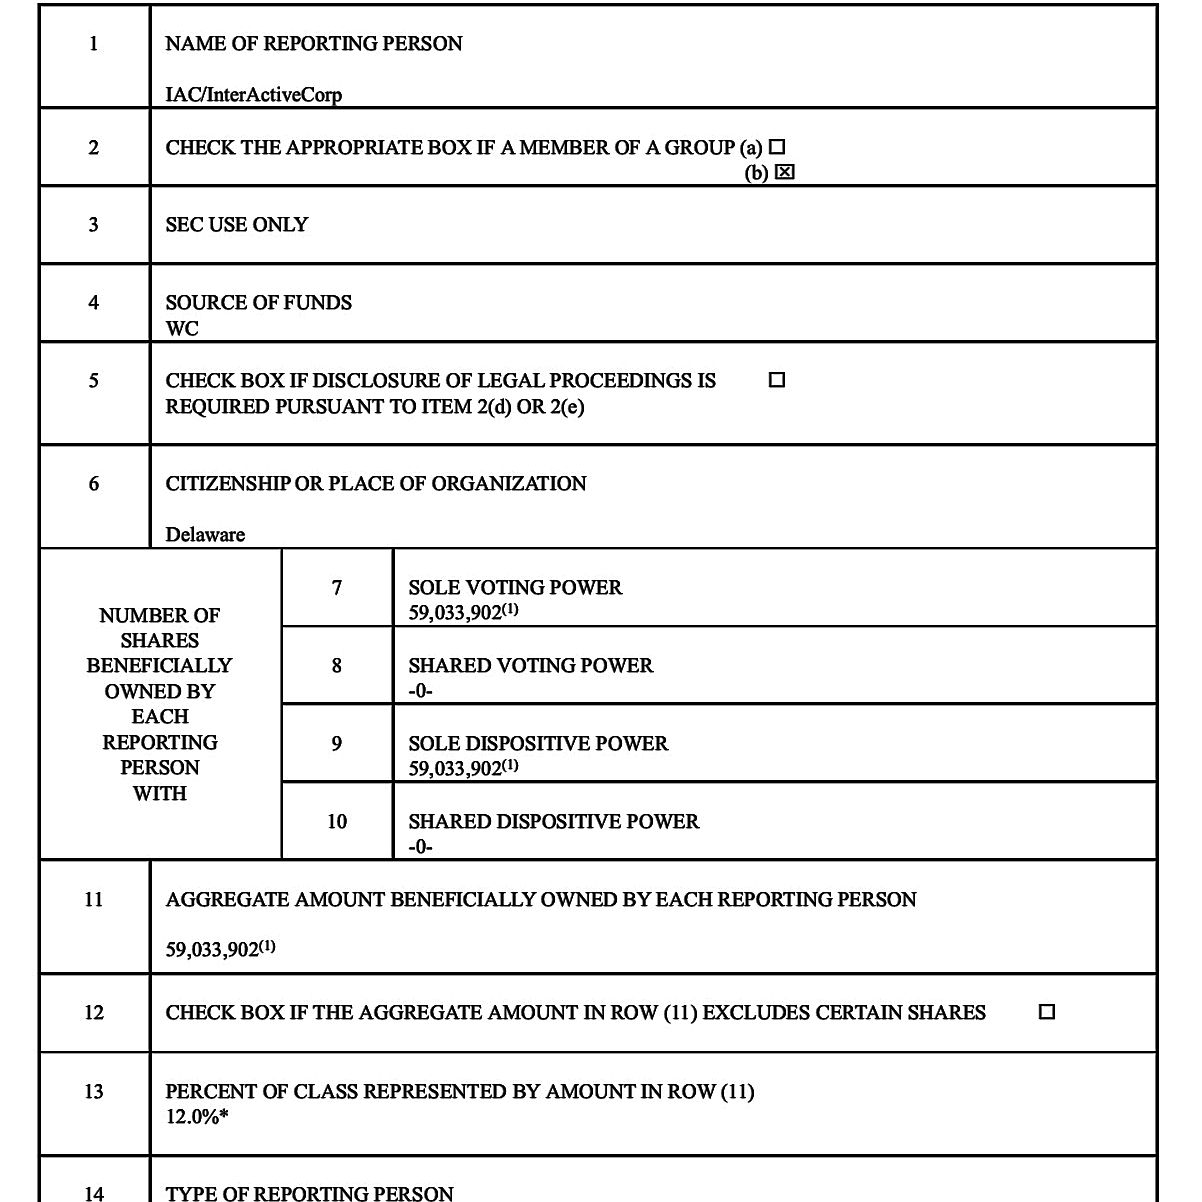 Example of 13D Filing from MGM Resorts International.